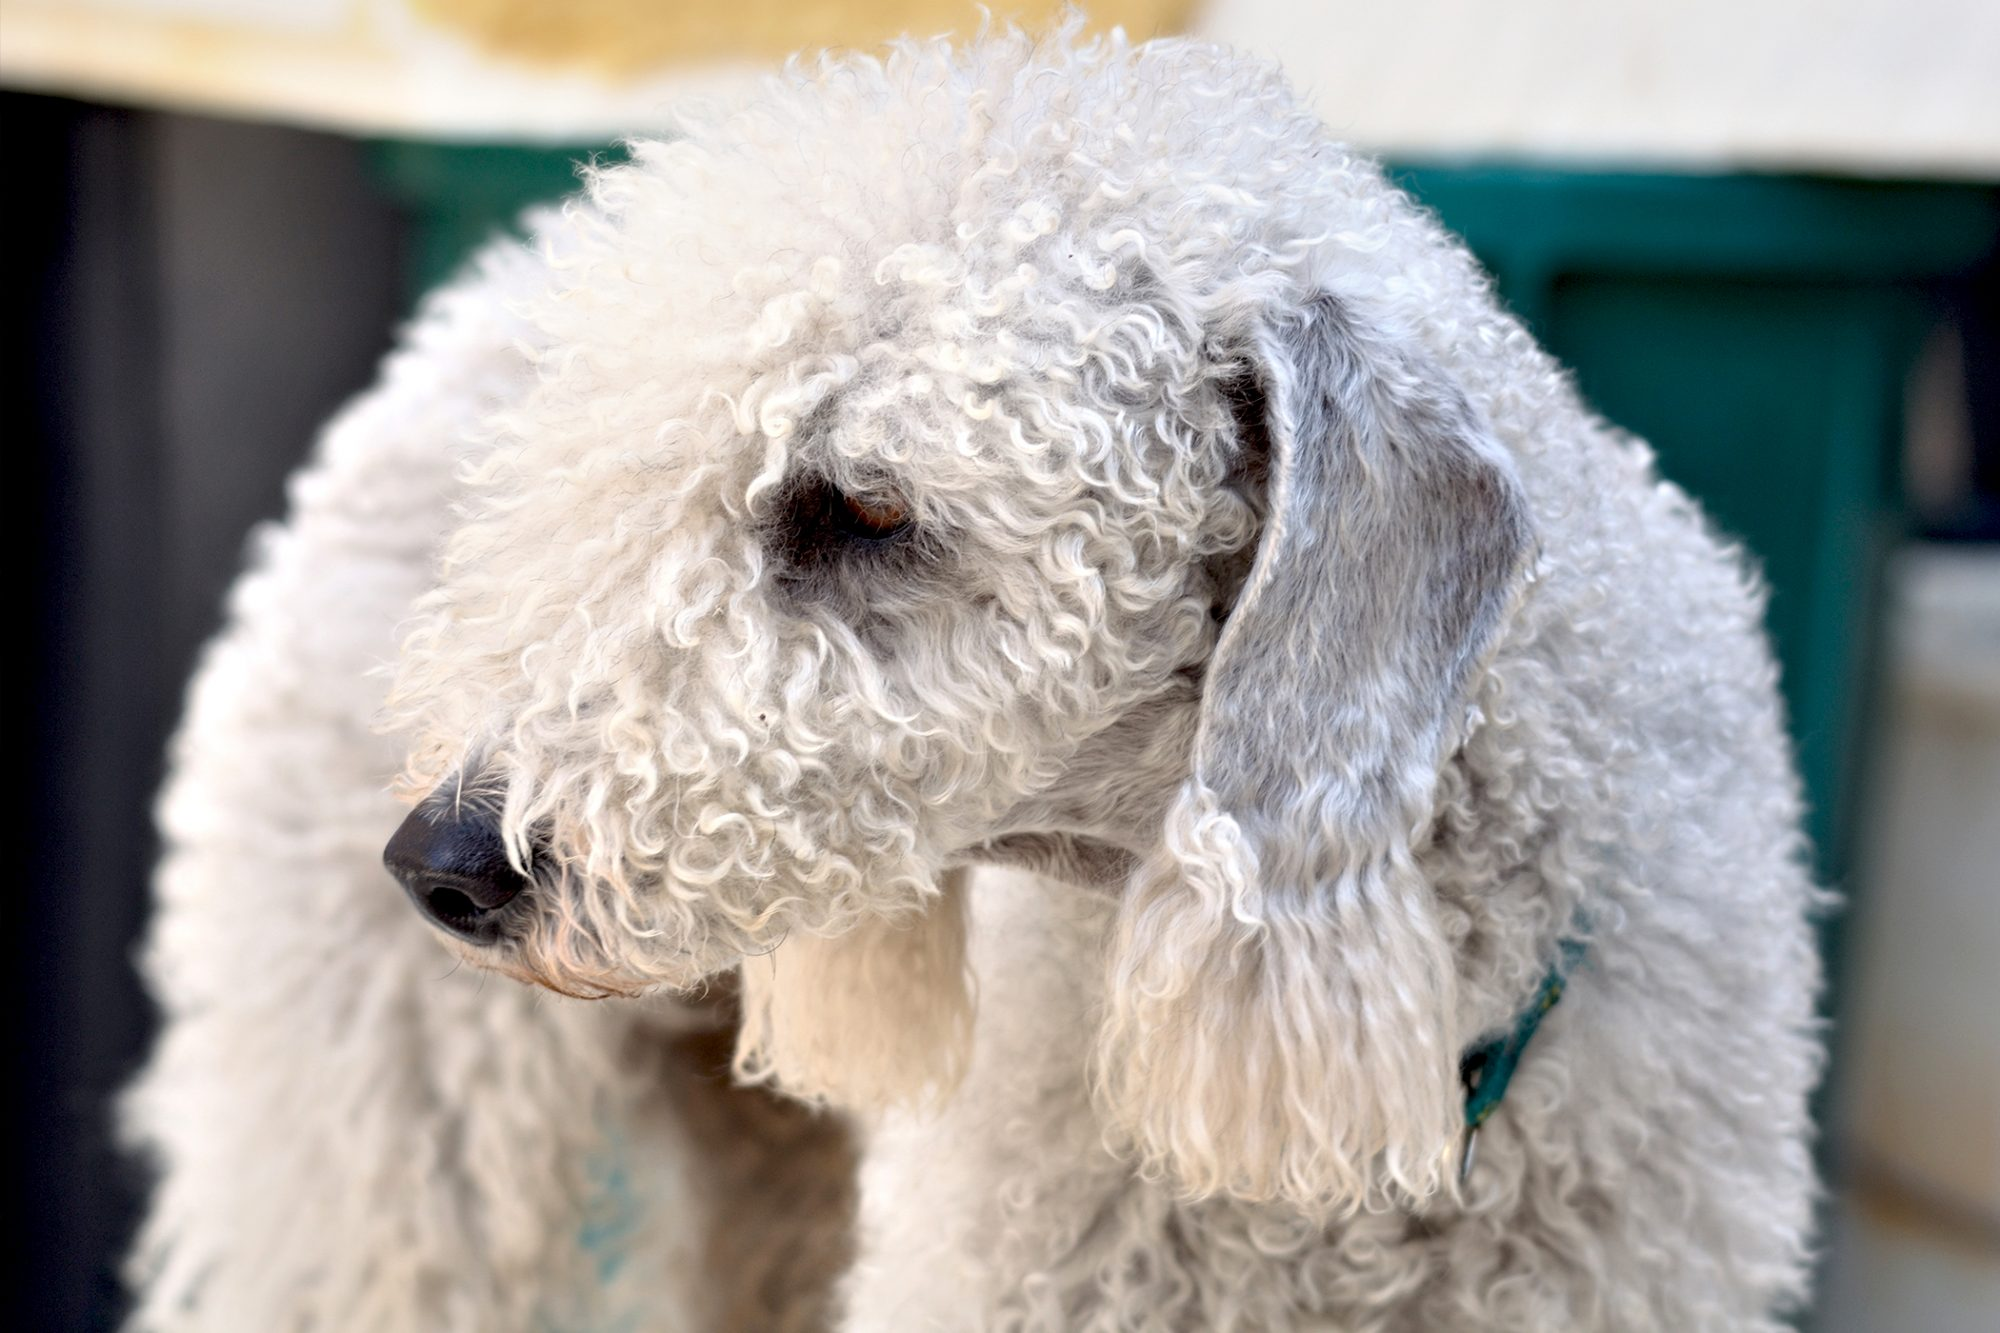 Close up of bedlington terrier, white and curly